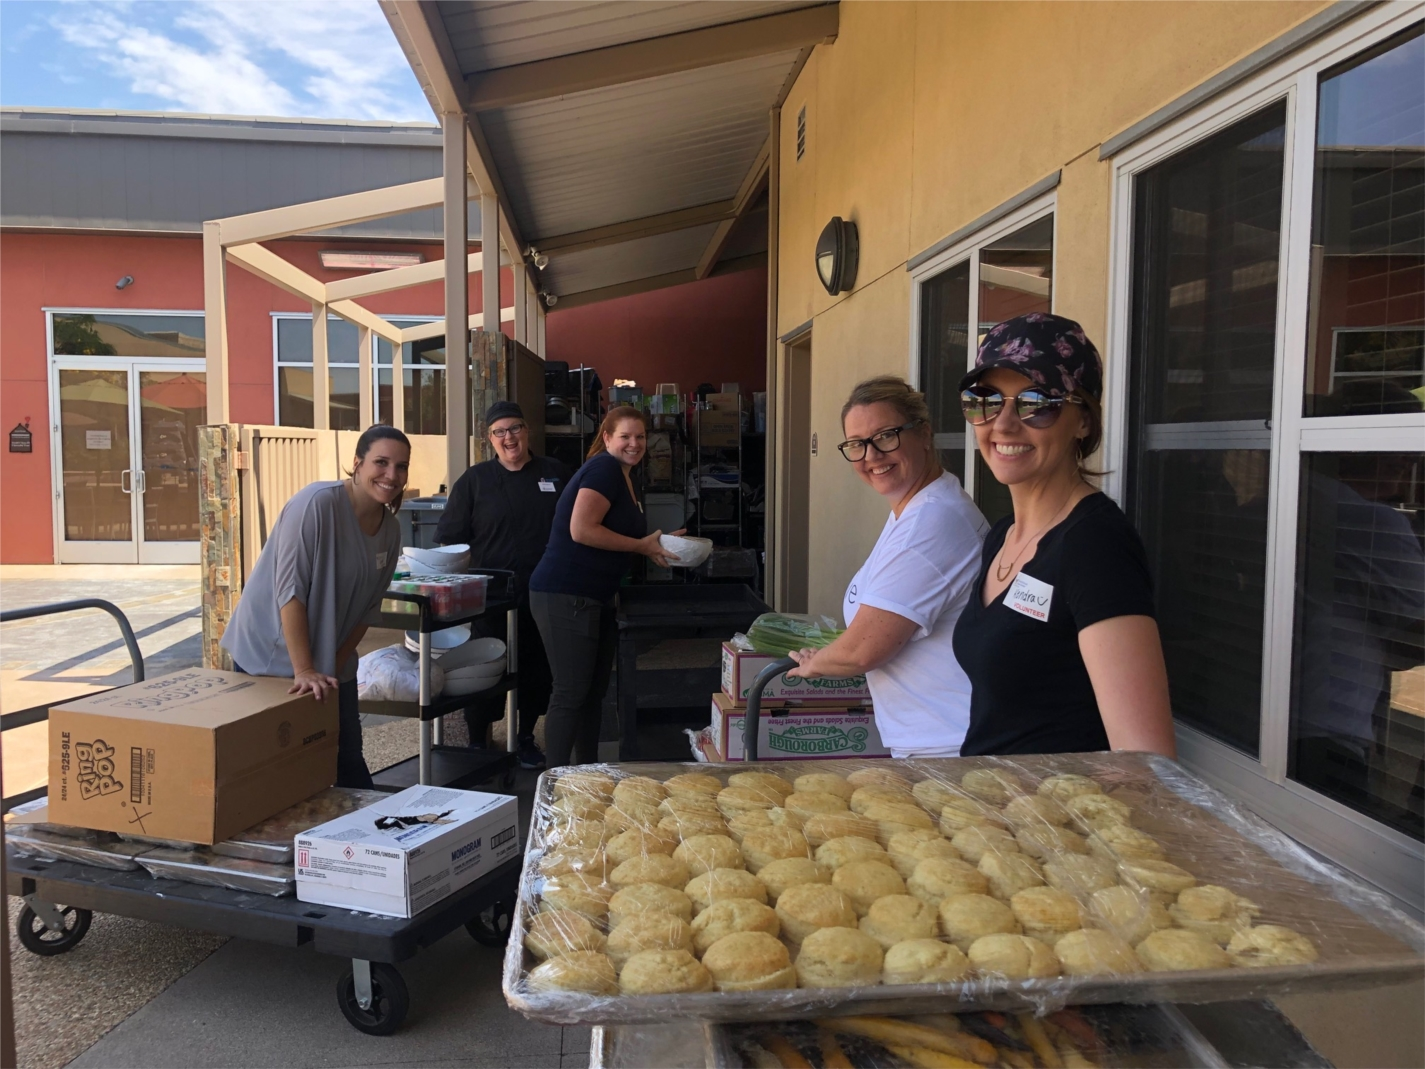 Our volunteers helping to provide a delicious meal for the families staying at the Ronald McDonald House.